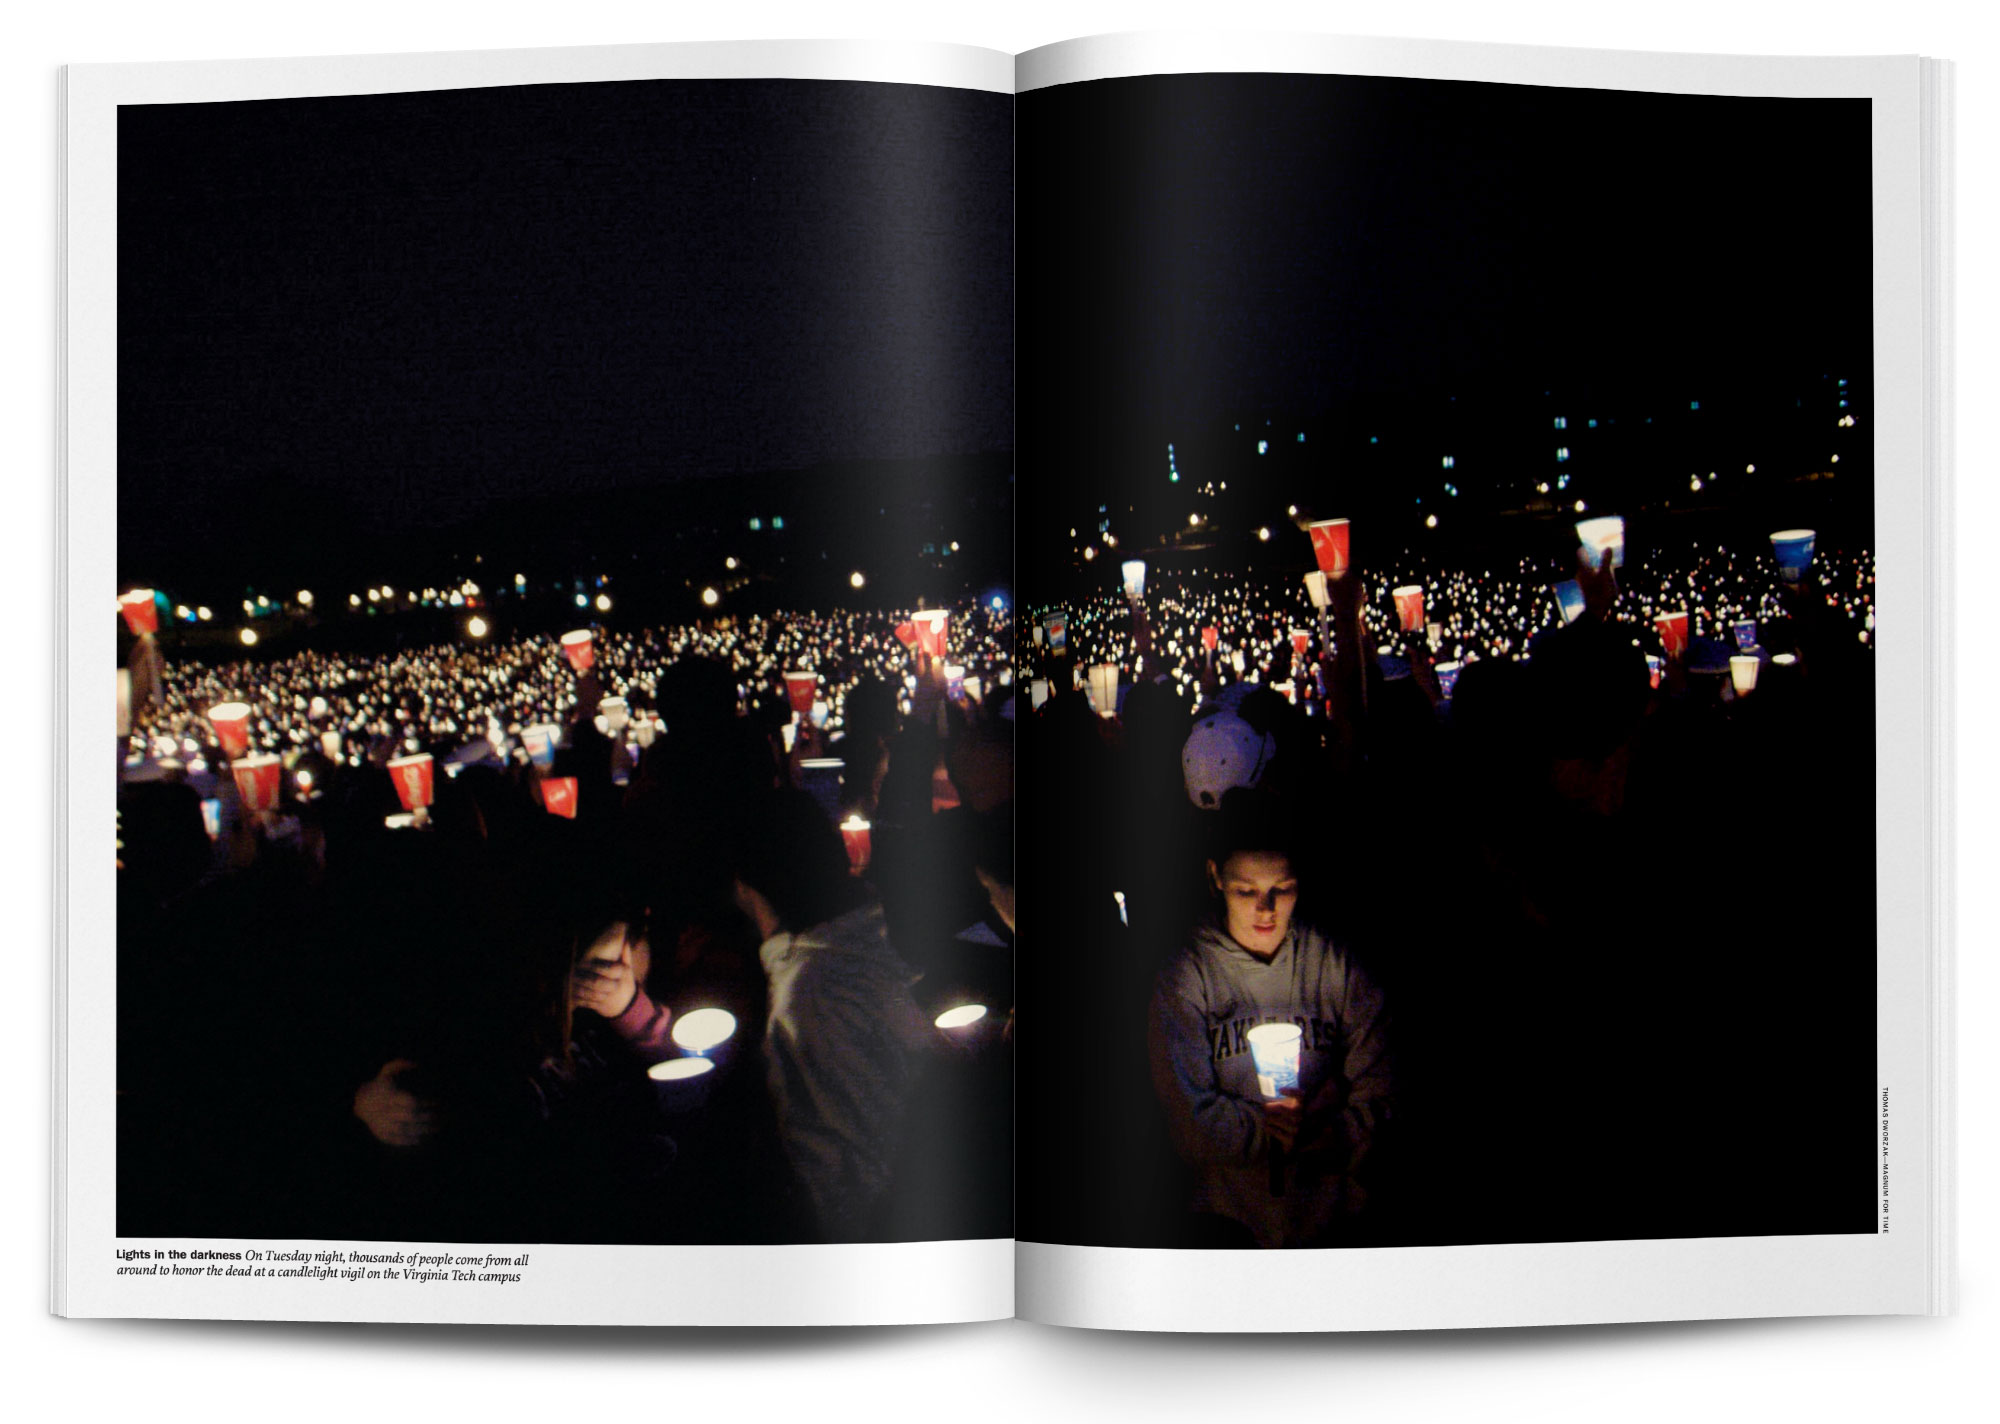 Art directed and designed the breaking news package on the Virginia Tech shooting